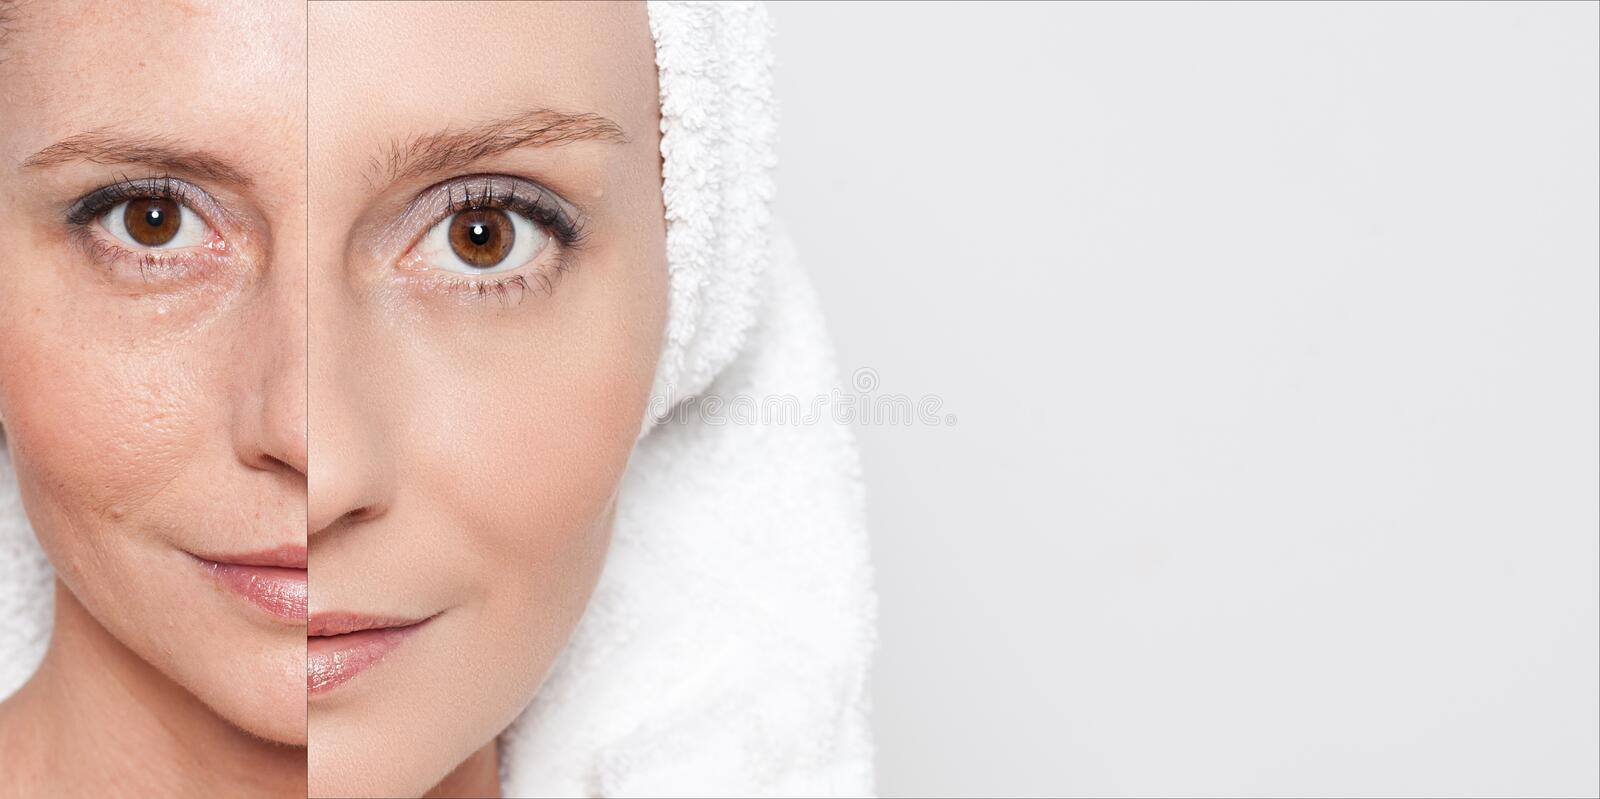 Happy woman after beauty treatment - before/after shots - skin care, anti-aging procedures, rejuvenation, lifting, tightening of. Facial skin royalty free stock photos